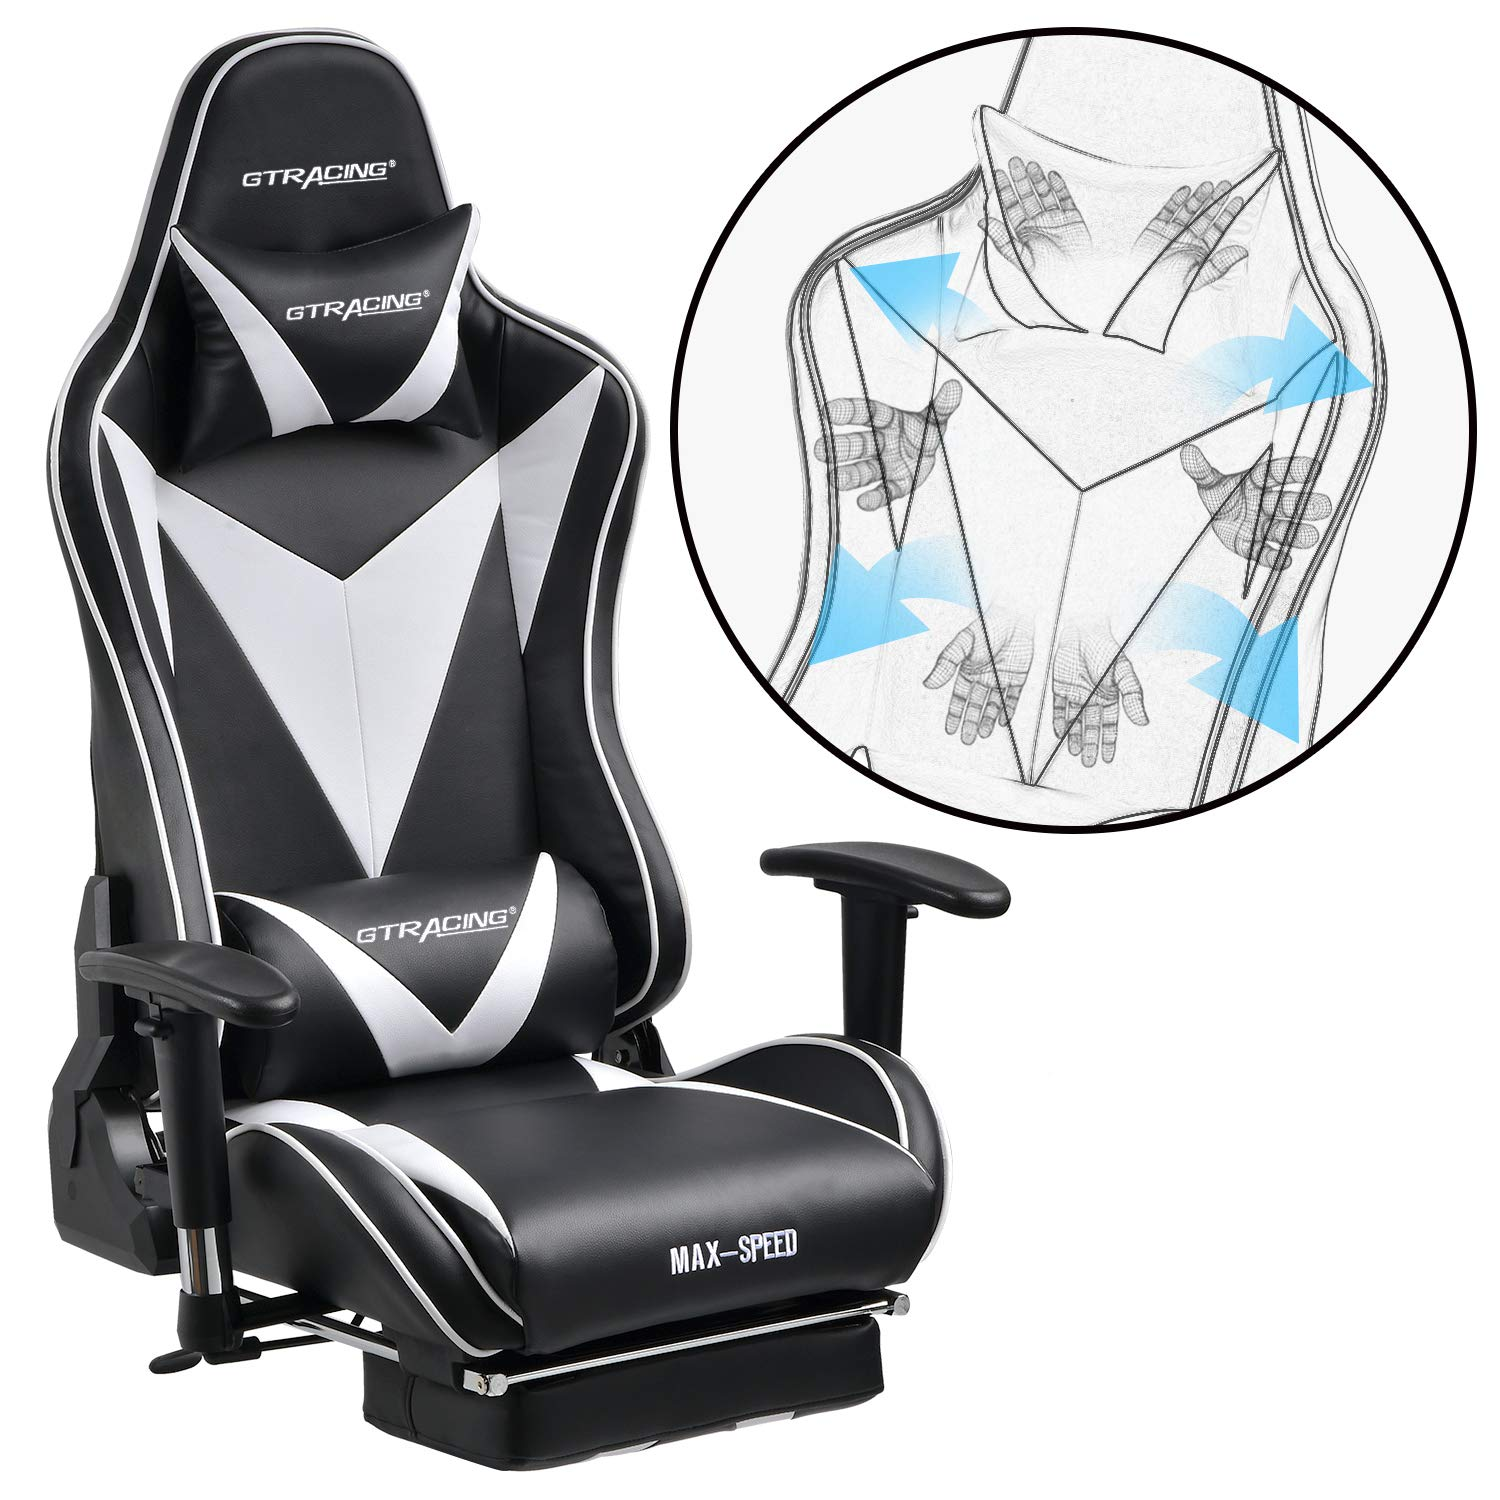 GTRACING Ergonomic Computer Chair Review